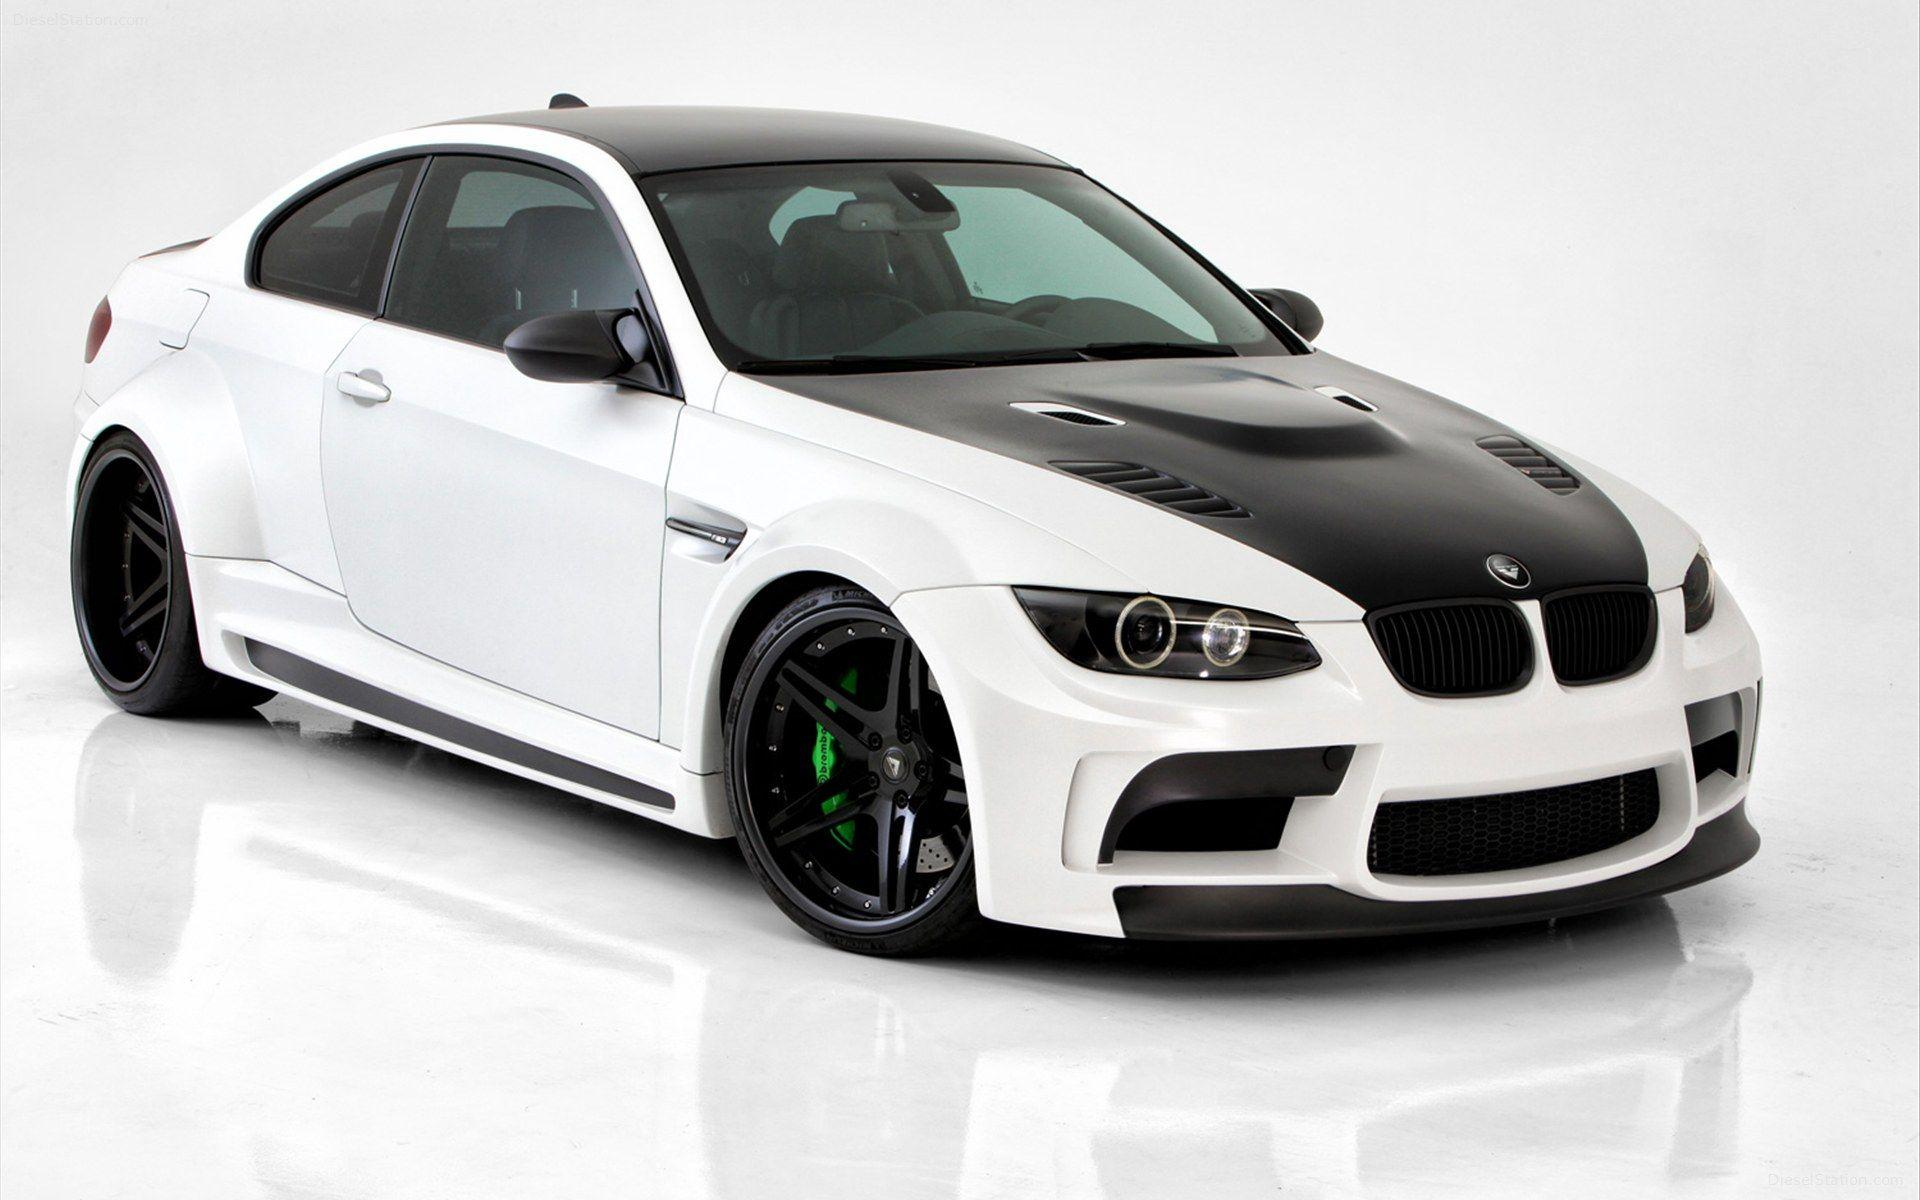 Black and White BMW M3 Logo - BMW M3 Wallpapers - Wallpaper Cave